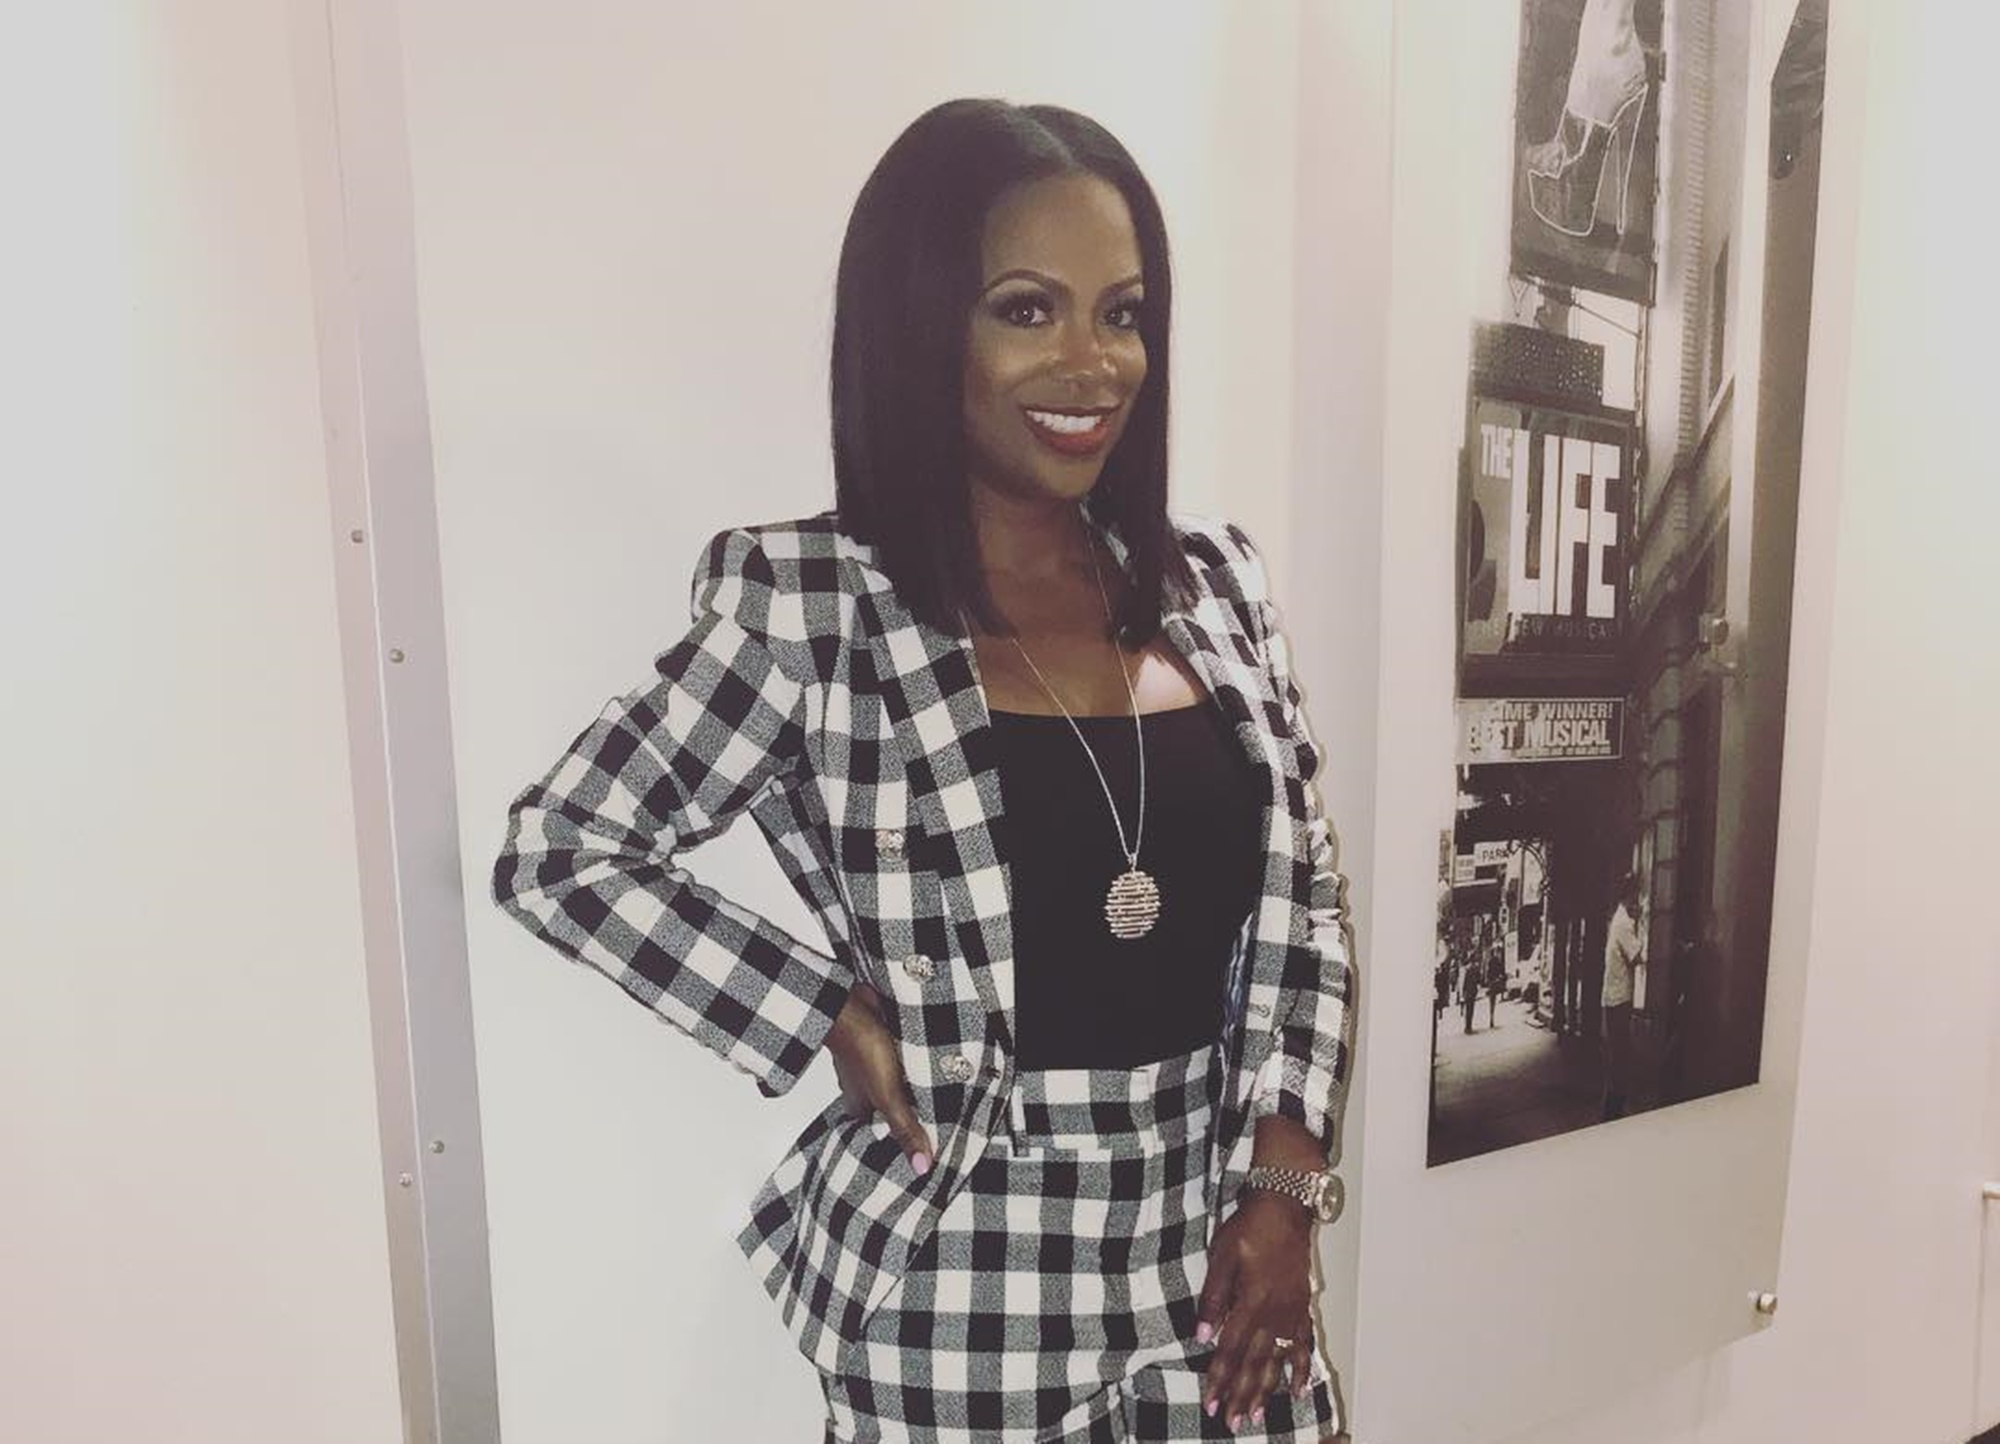 kandi-burruss-and-some-real-housewives-of-atlanta-fans-think-she-should-leave-the-show-if-phaedra-parks-makes-a-comeback